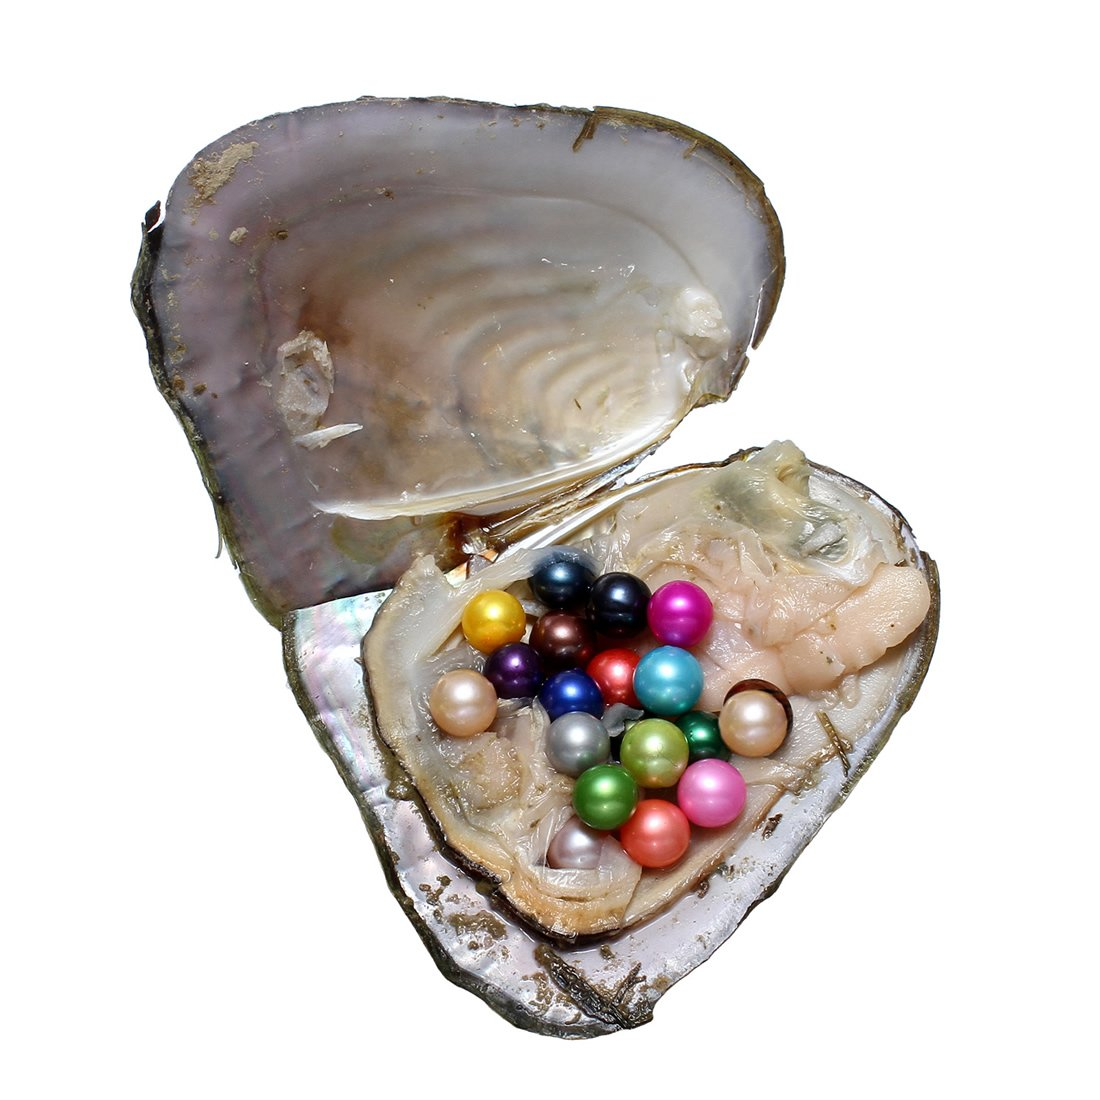 50PC Oysters with Pearls Inside, Freshwater Cultured Love Wish Pearl Oyster with Mixed Colors (7-8mm) by COOCLE (Image #3)